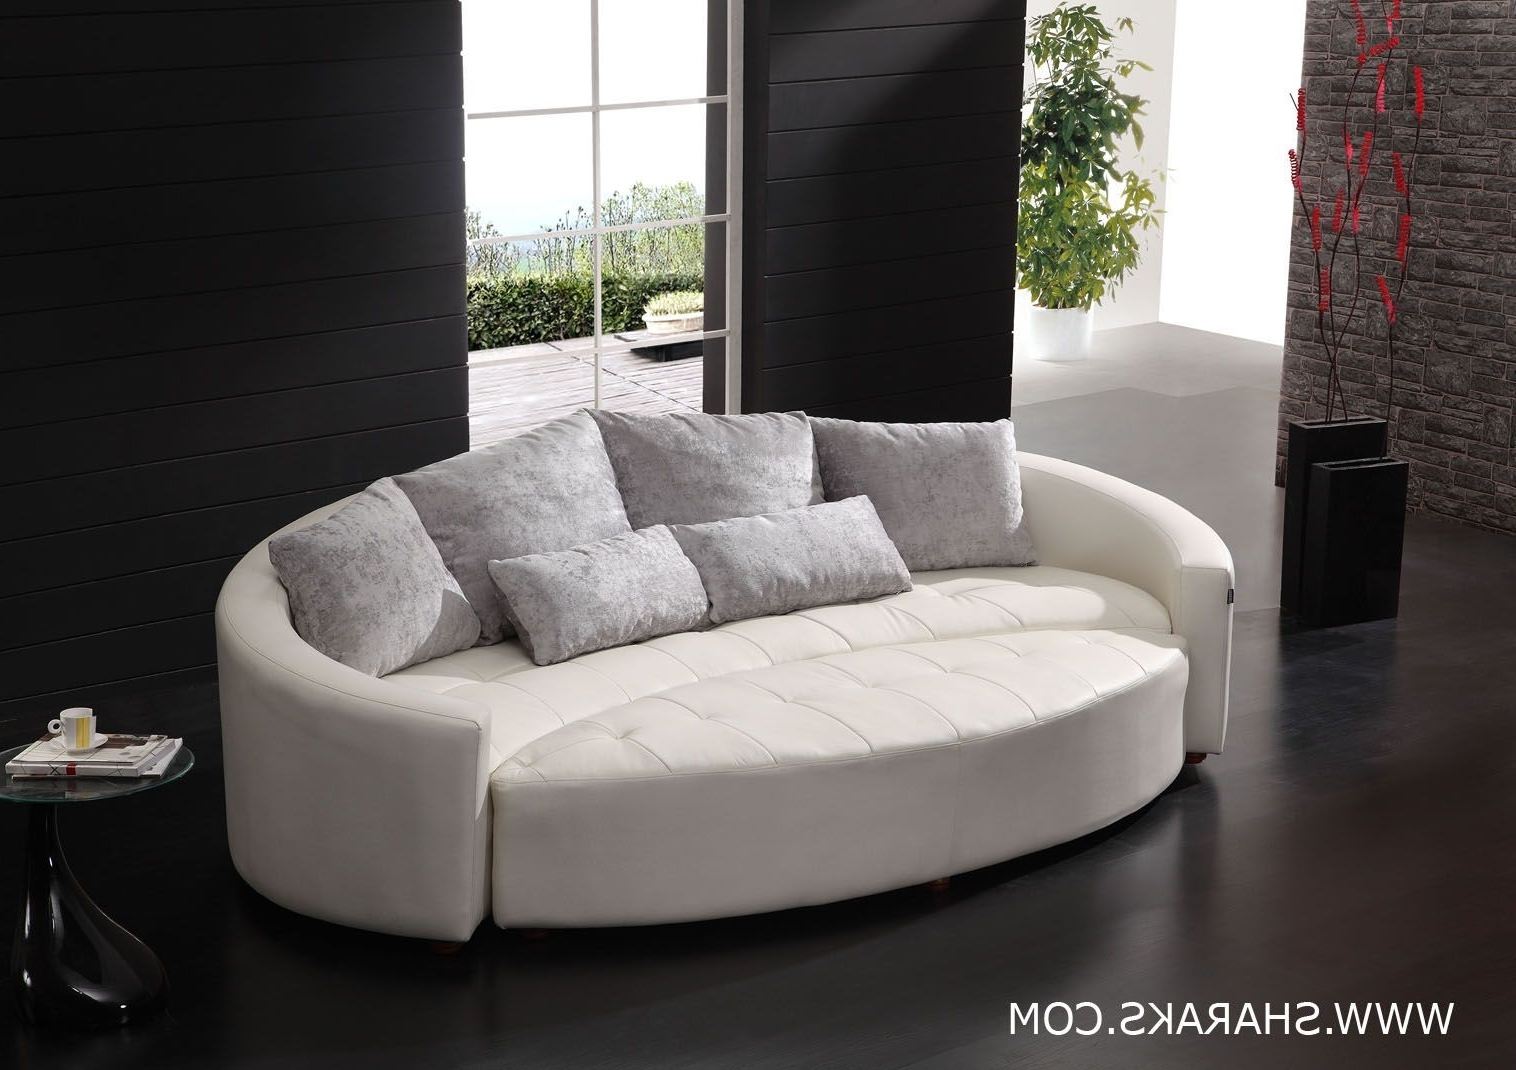 Cornering The Curved Leather Sofas Intended For Circular Sofa Chairs (View 9 of 20)